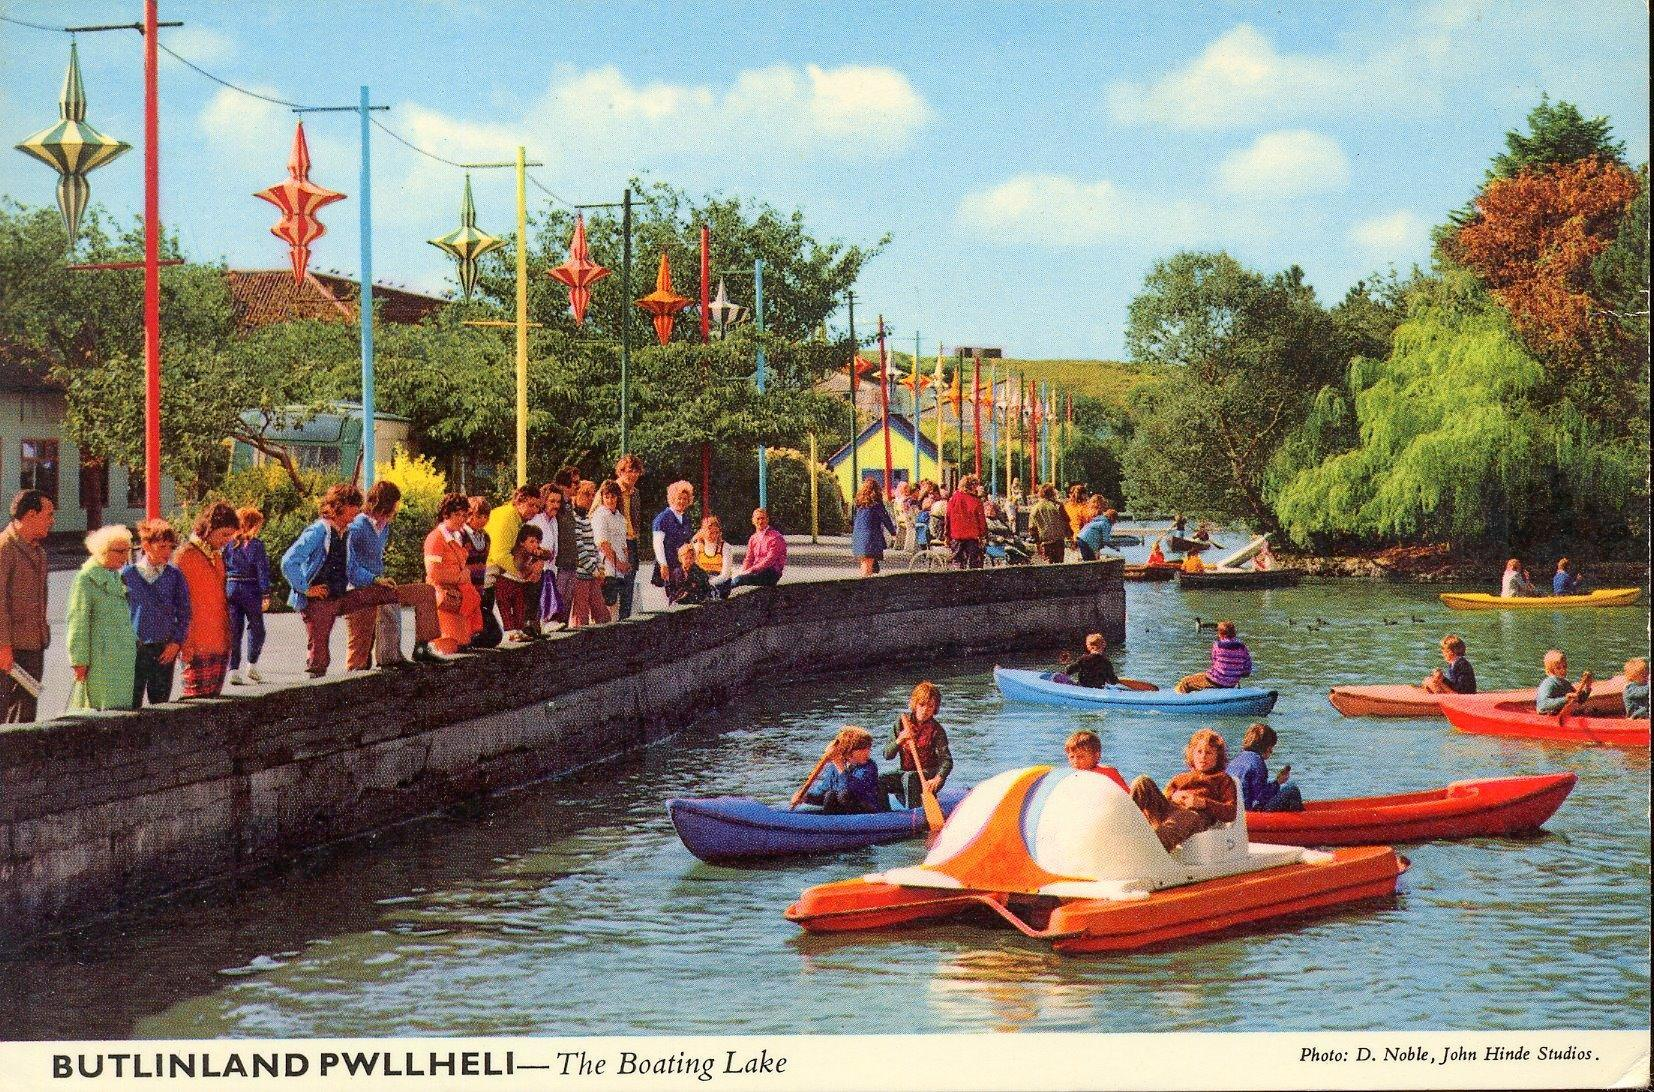 Butlins Pwllheli - Boating Lake (postcard, early 1970s)